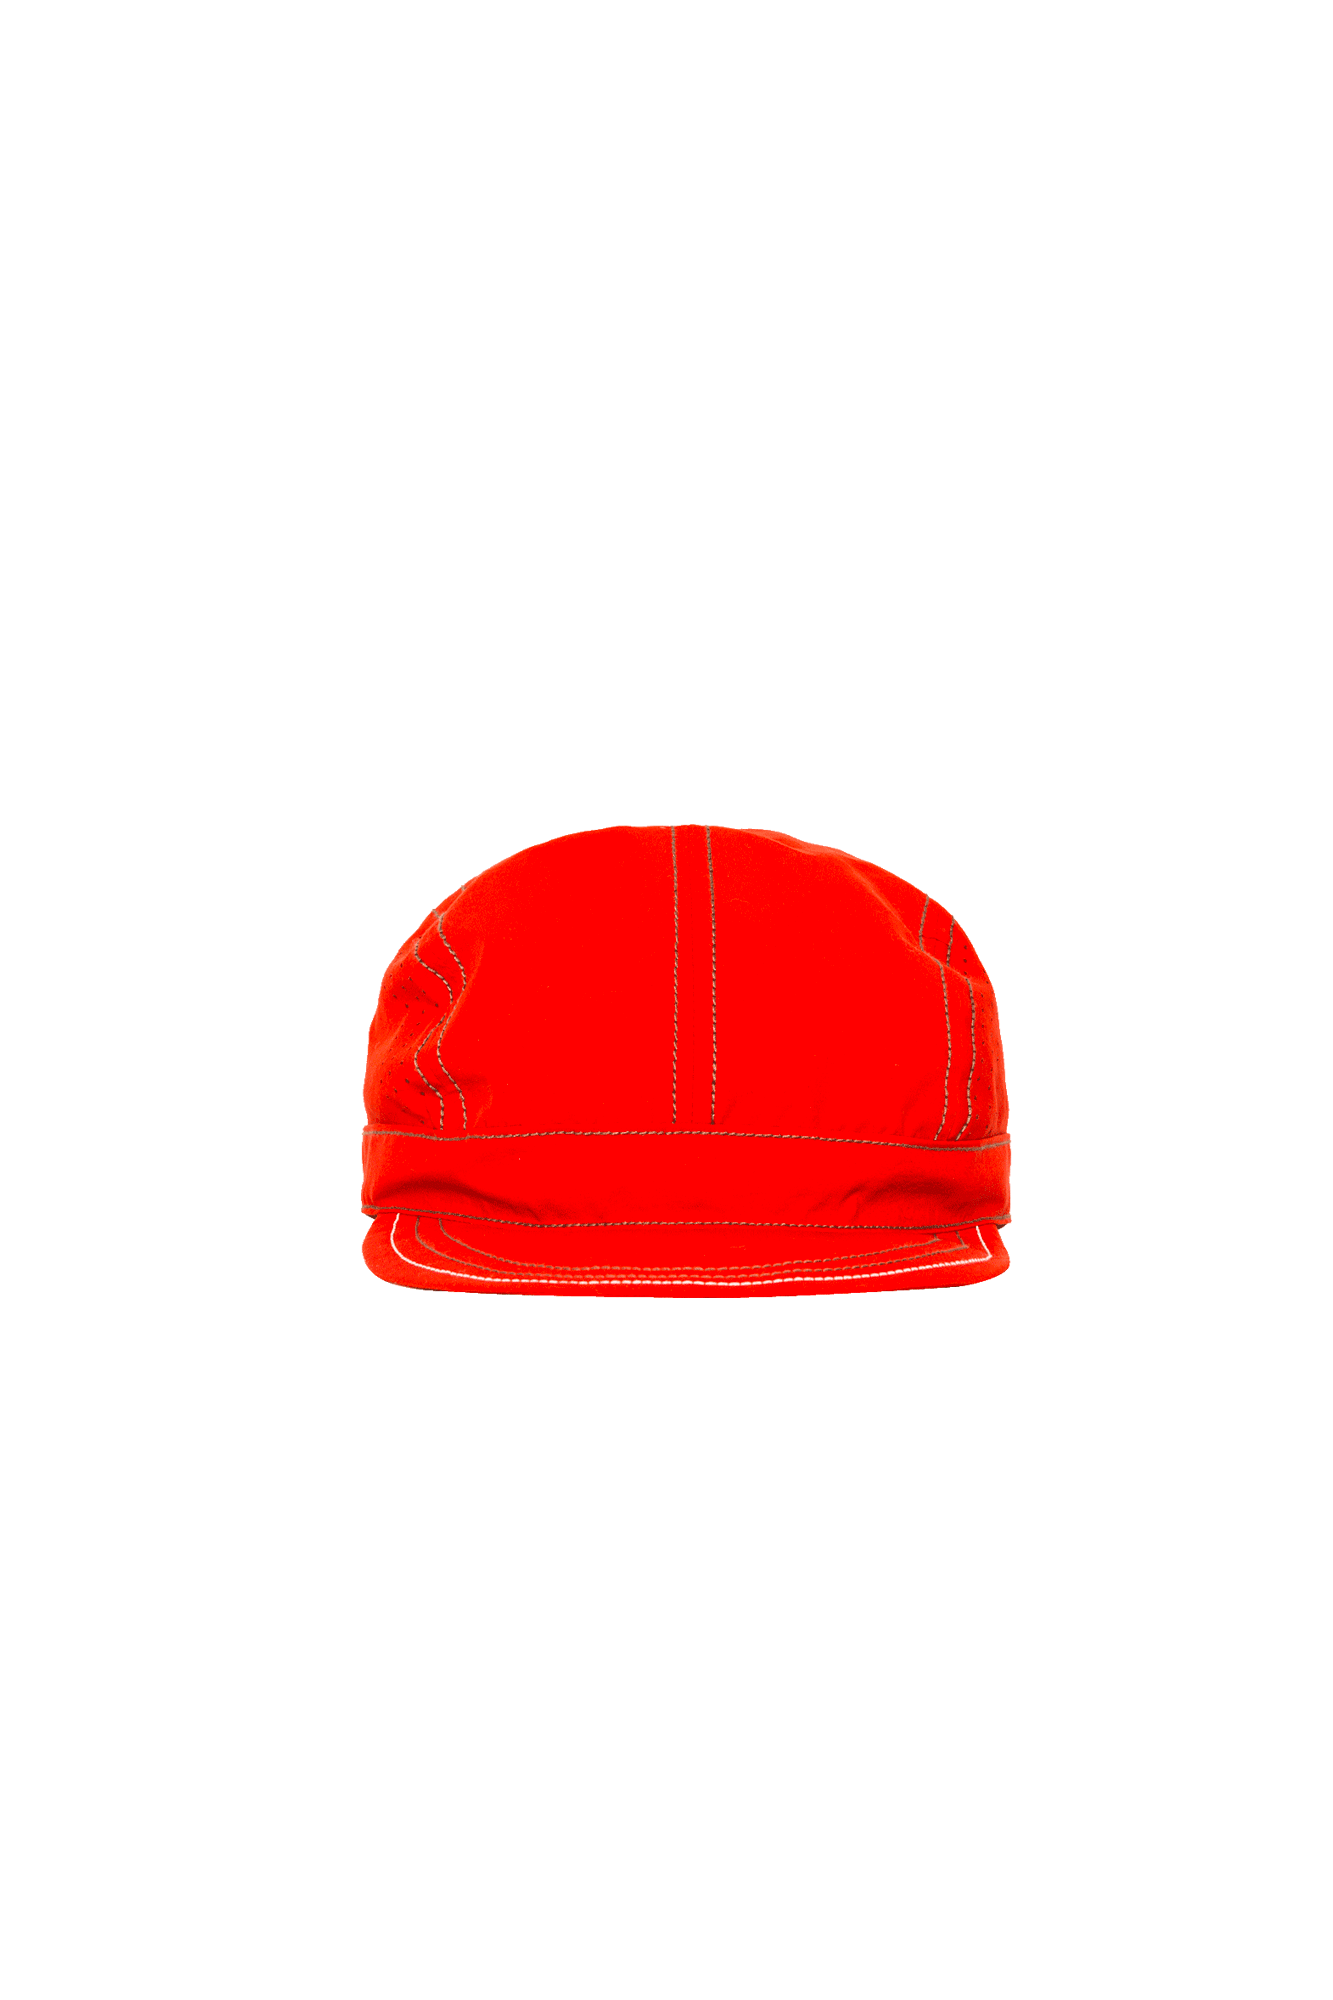 And Wander Hats Nylon Taffeta Cap Red AW91-AA088#000#RED#OS - One Block Down